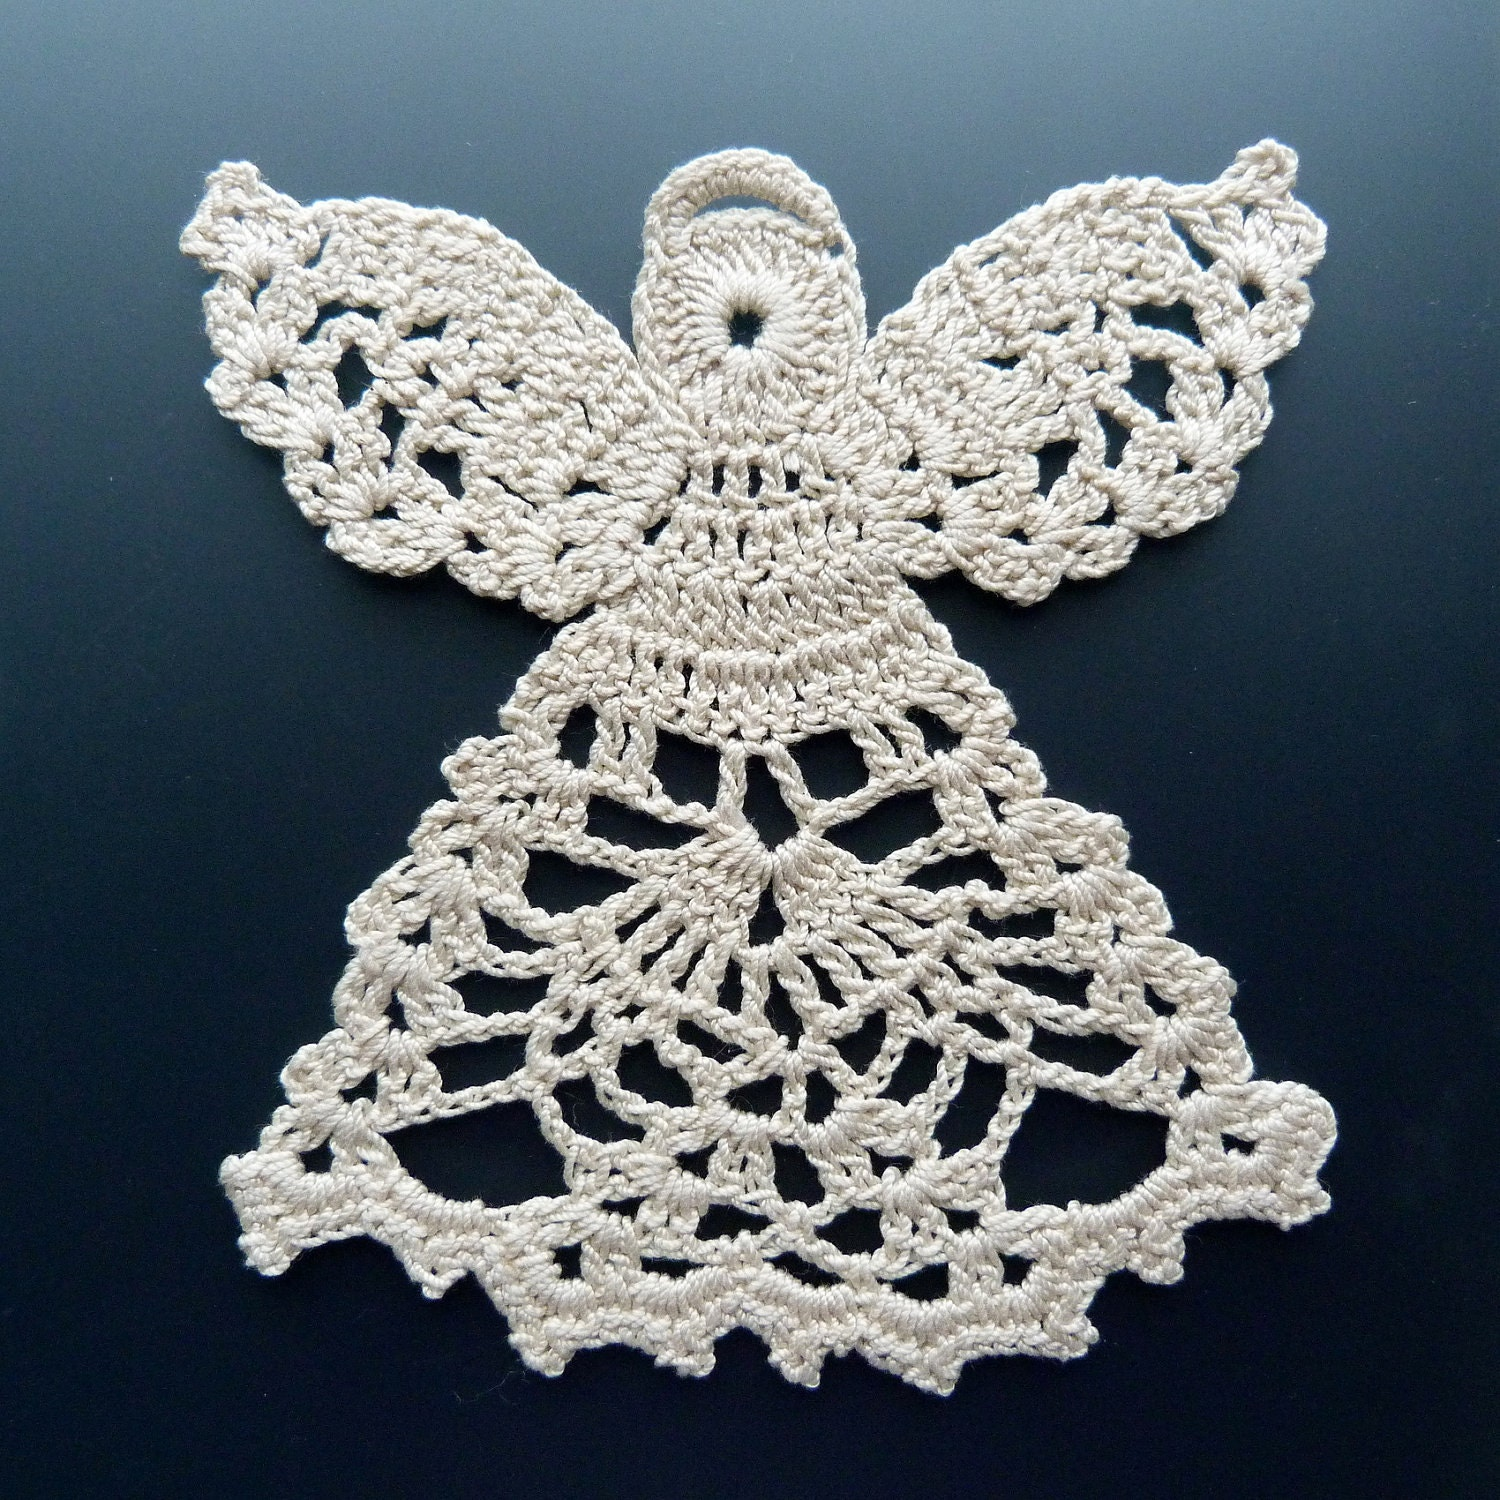 Crocheted Doily - Angel in Lace